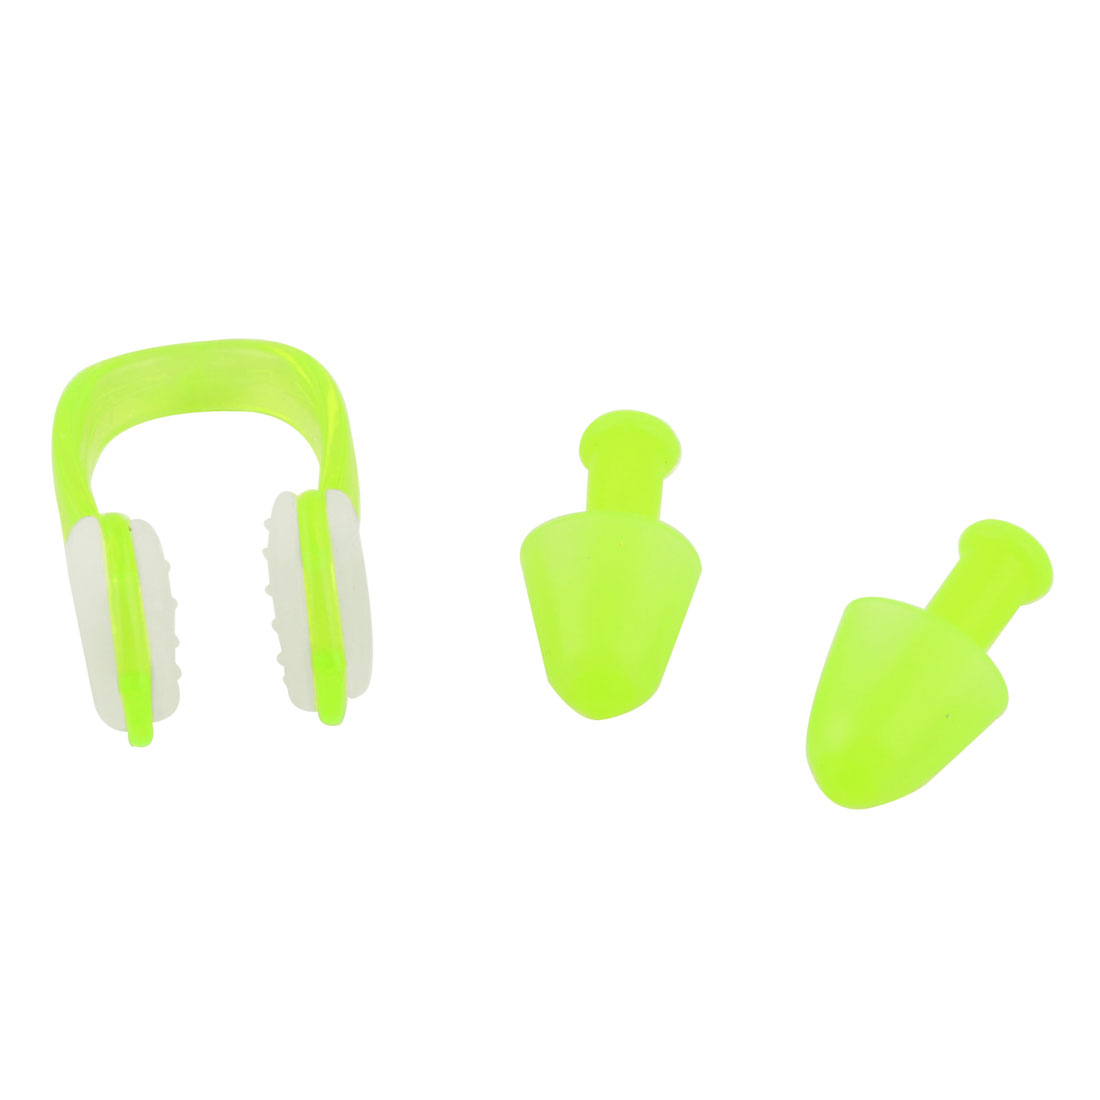 Water Diving Sports Nose Clip Earplugs Swimming Protector Set Light Green Clear